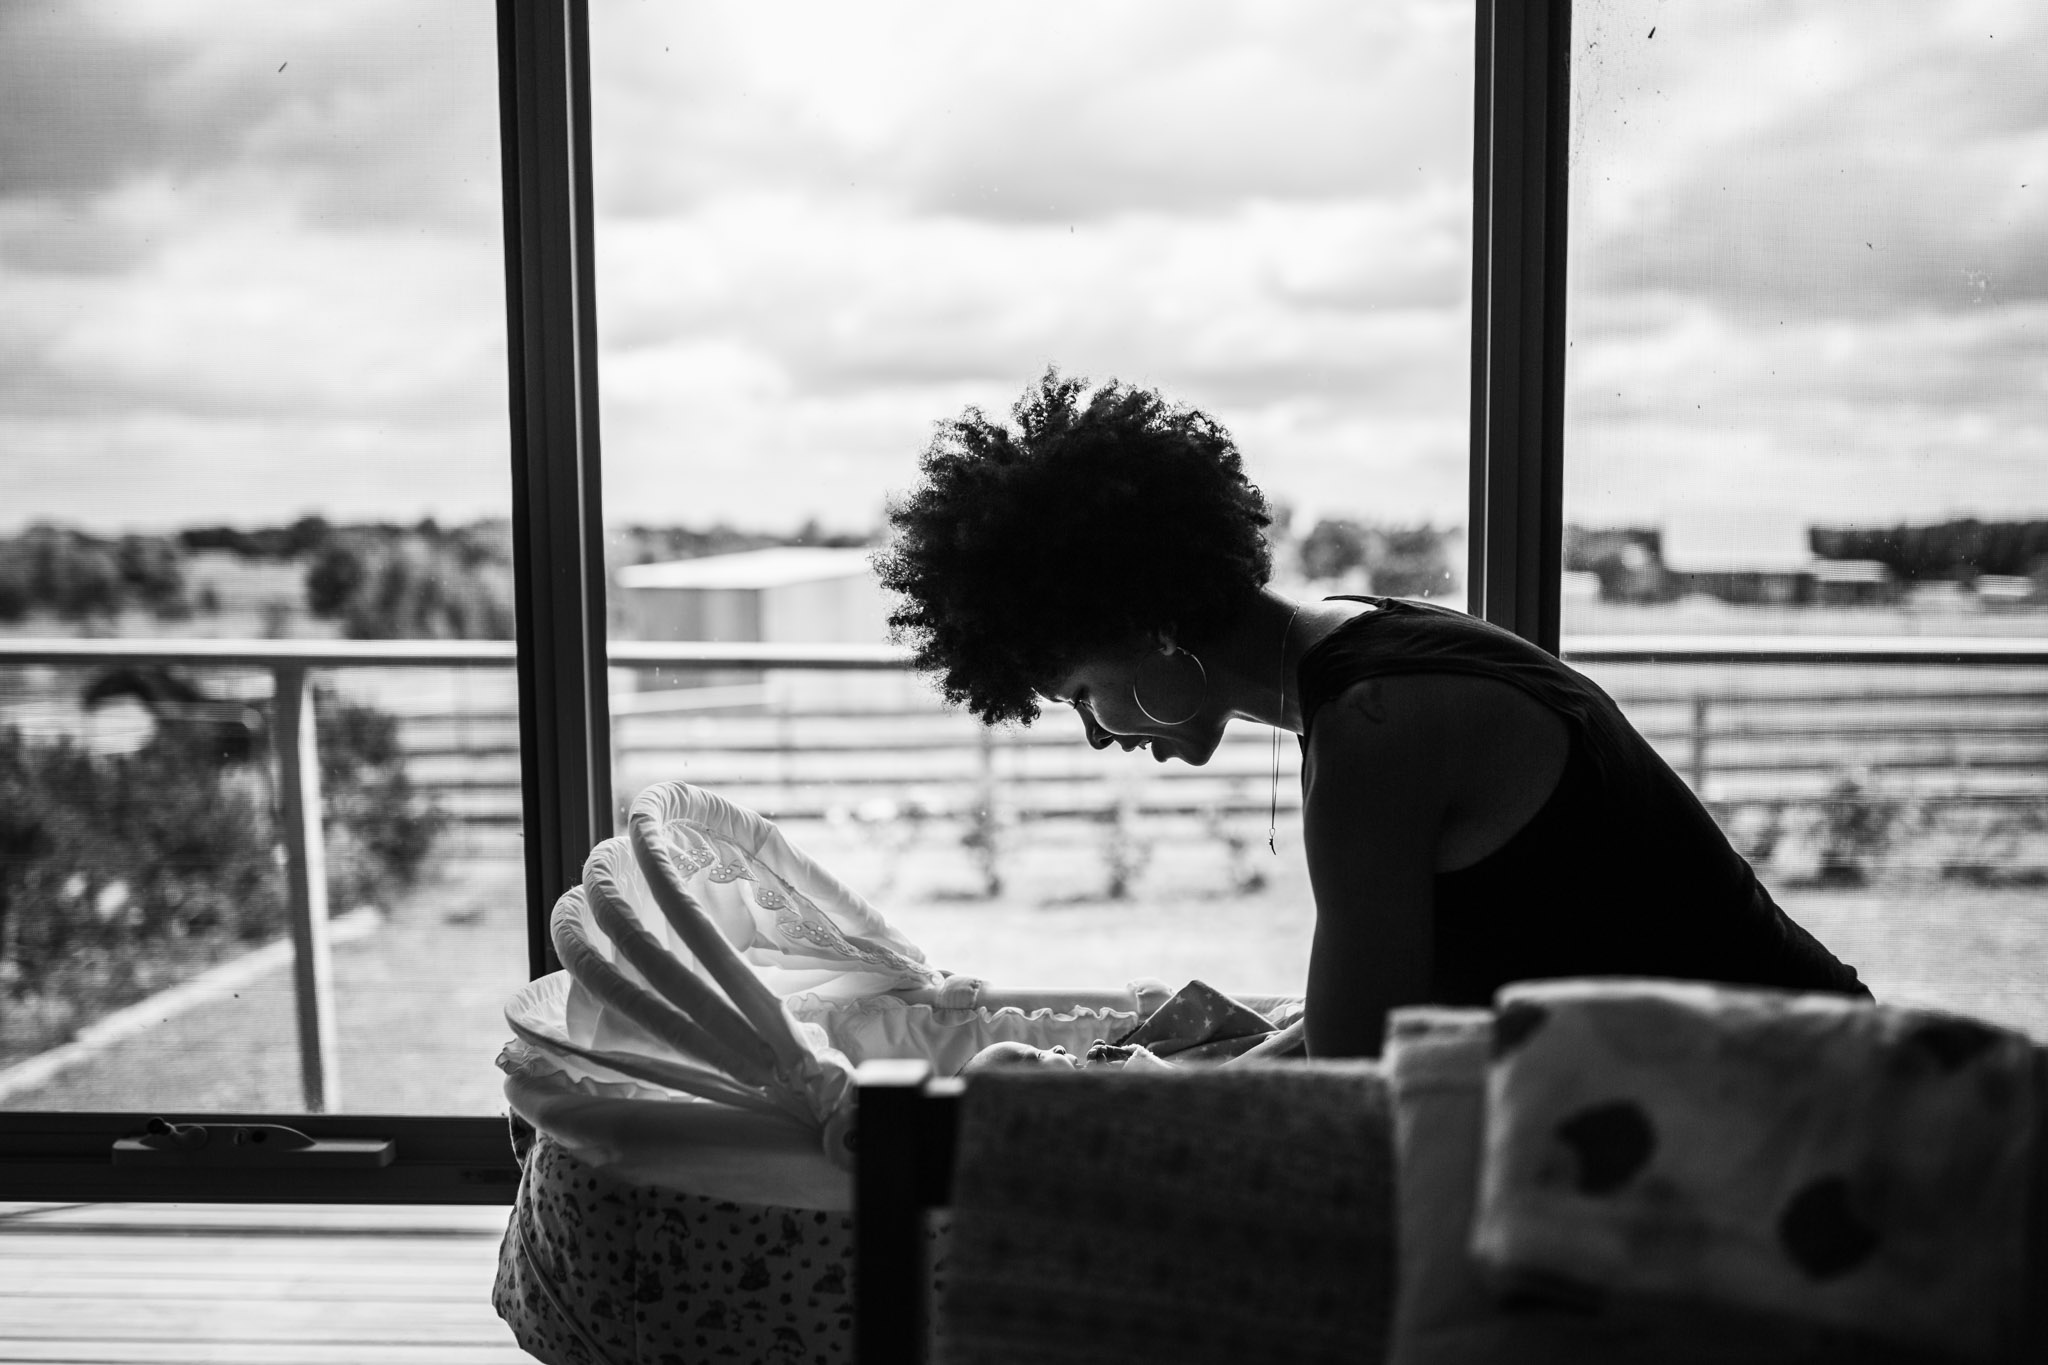 mother-lifting-baby-from-bassinet-silhouette-BW (1 of 1).jpg